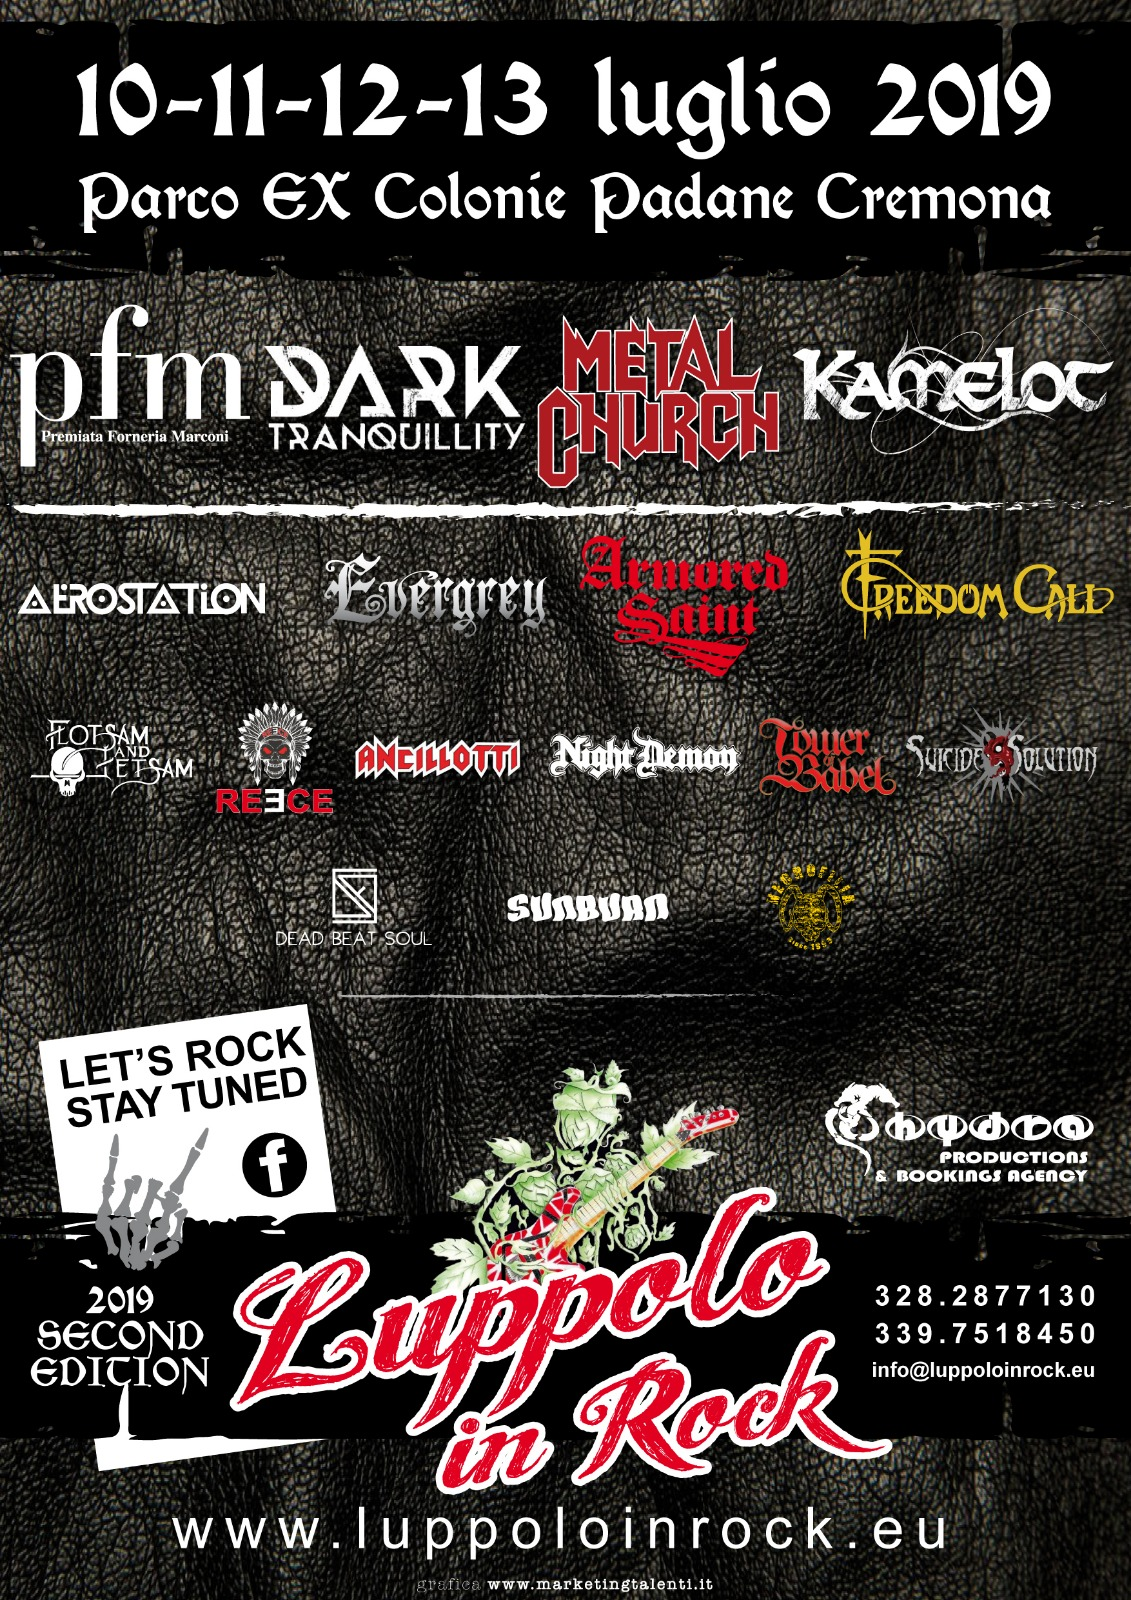 Luppolo in Rock: 4 giorni di metal e rock a Cremona